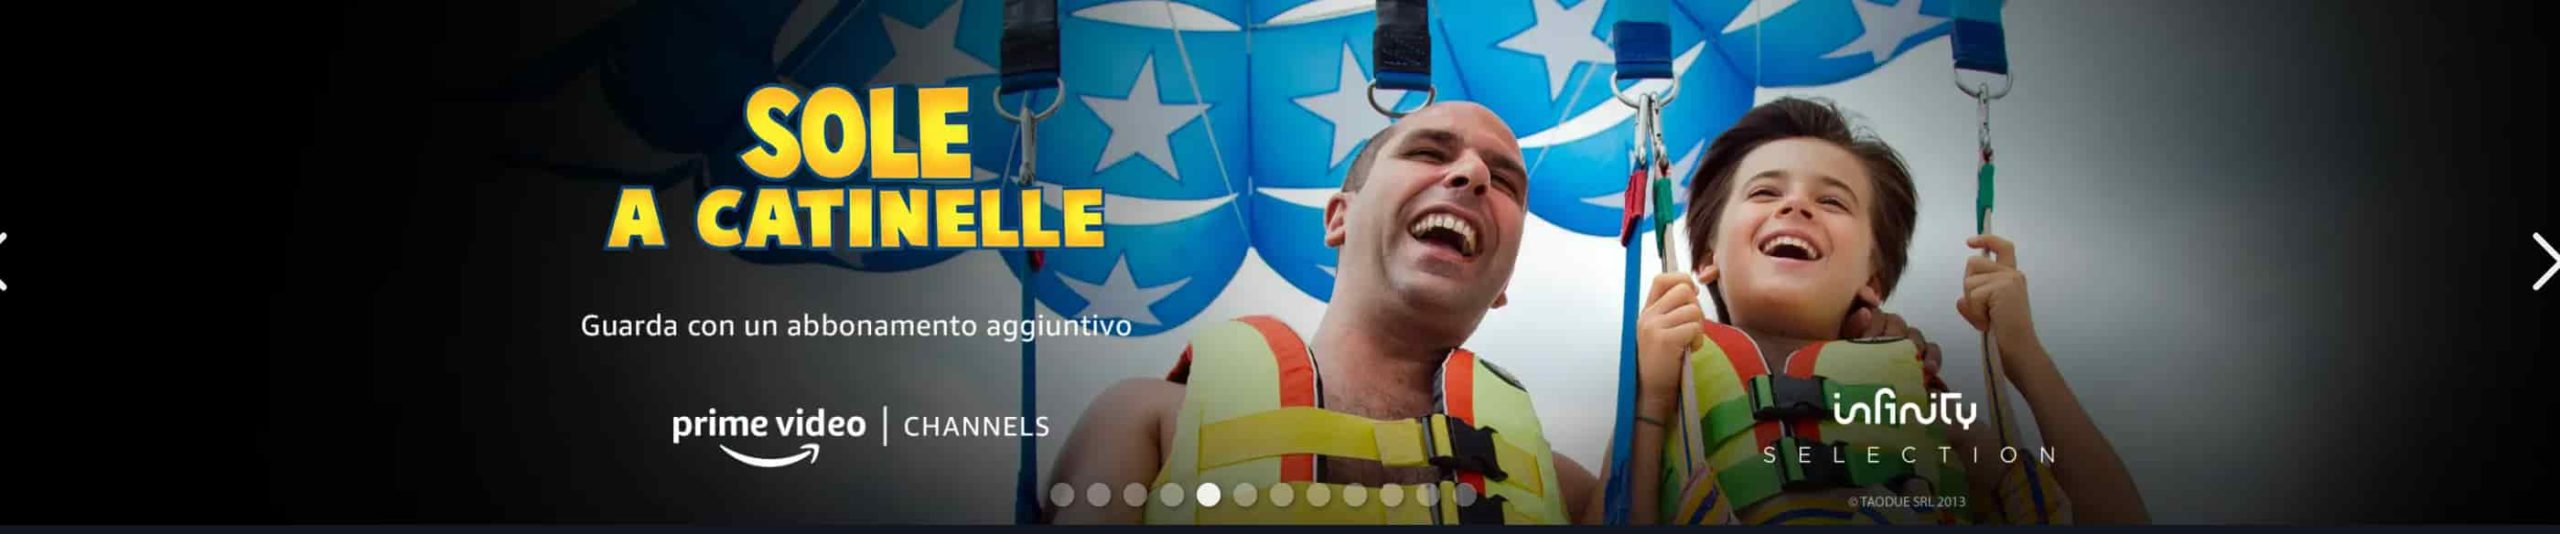 Amazon Prime Video Sole a Catinelle